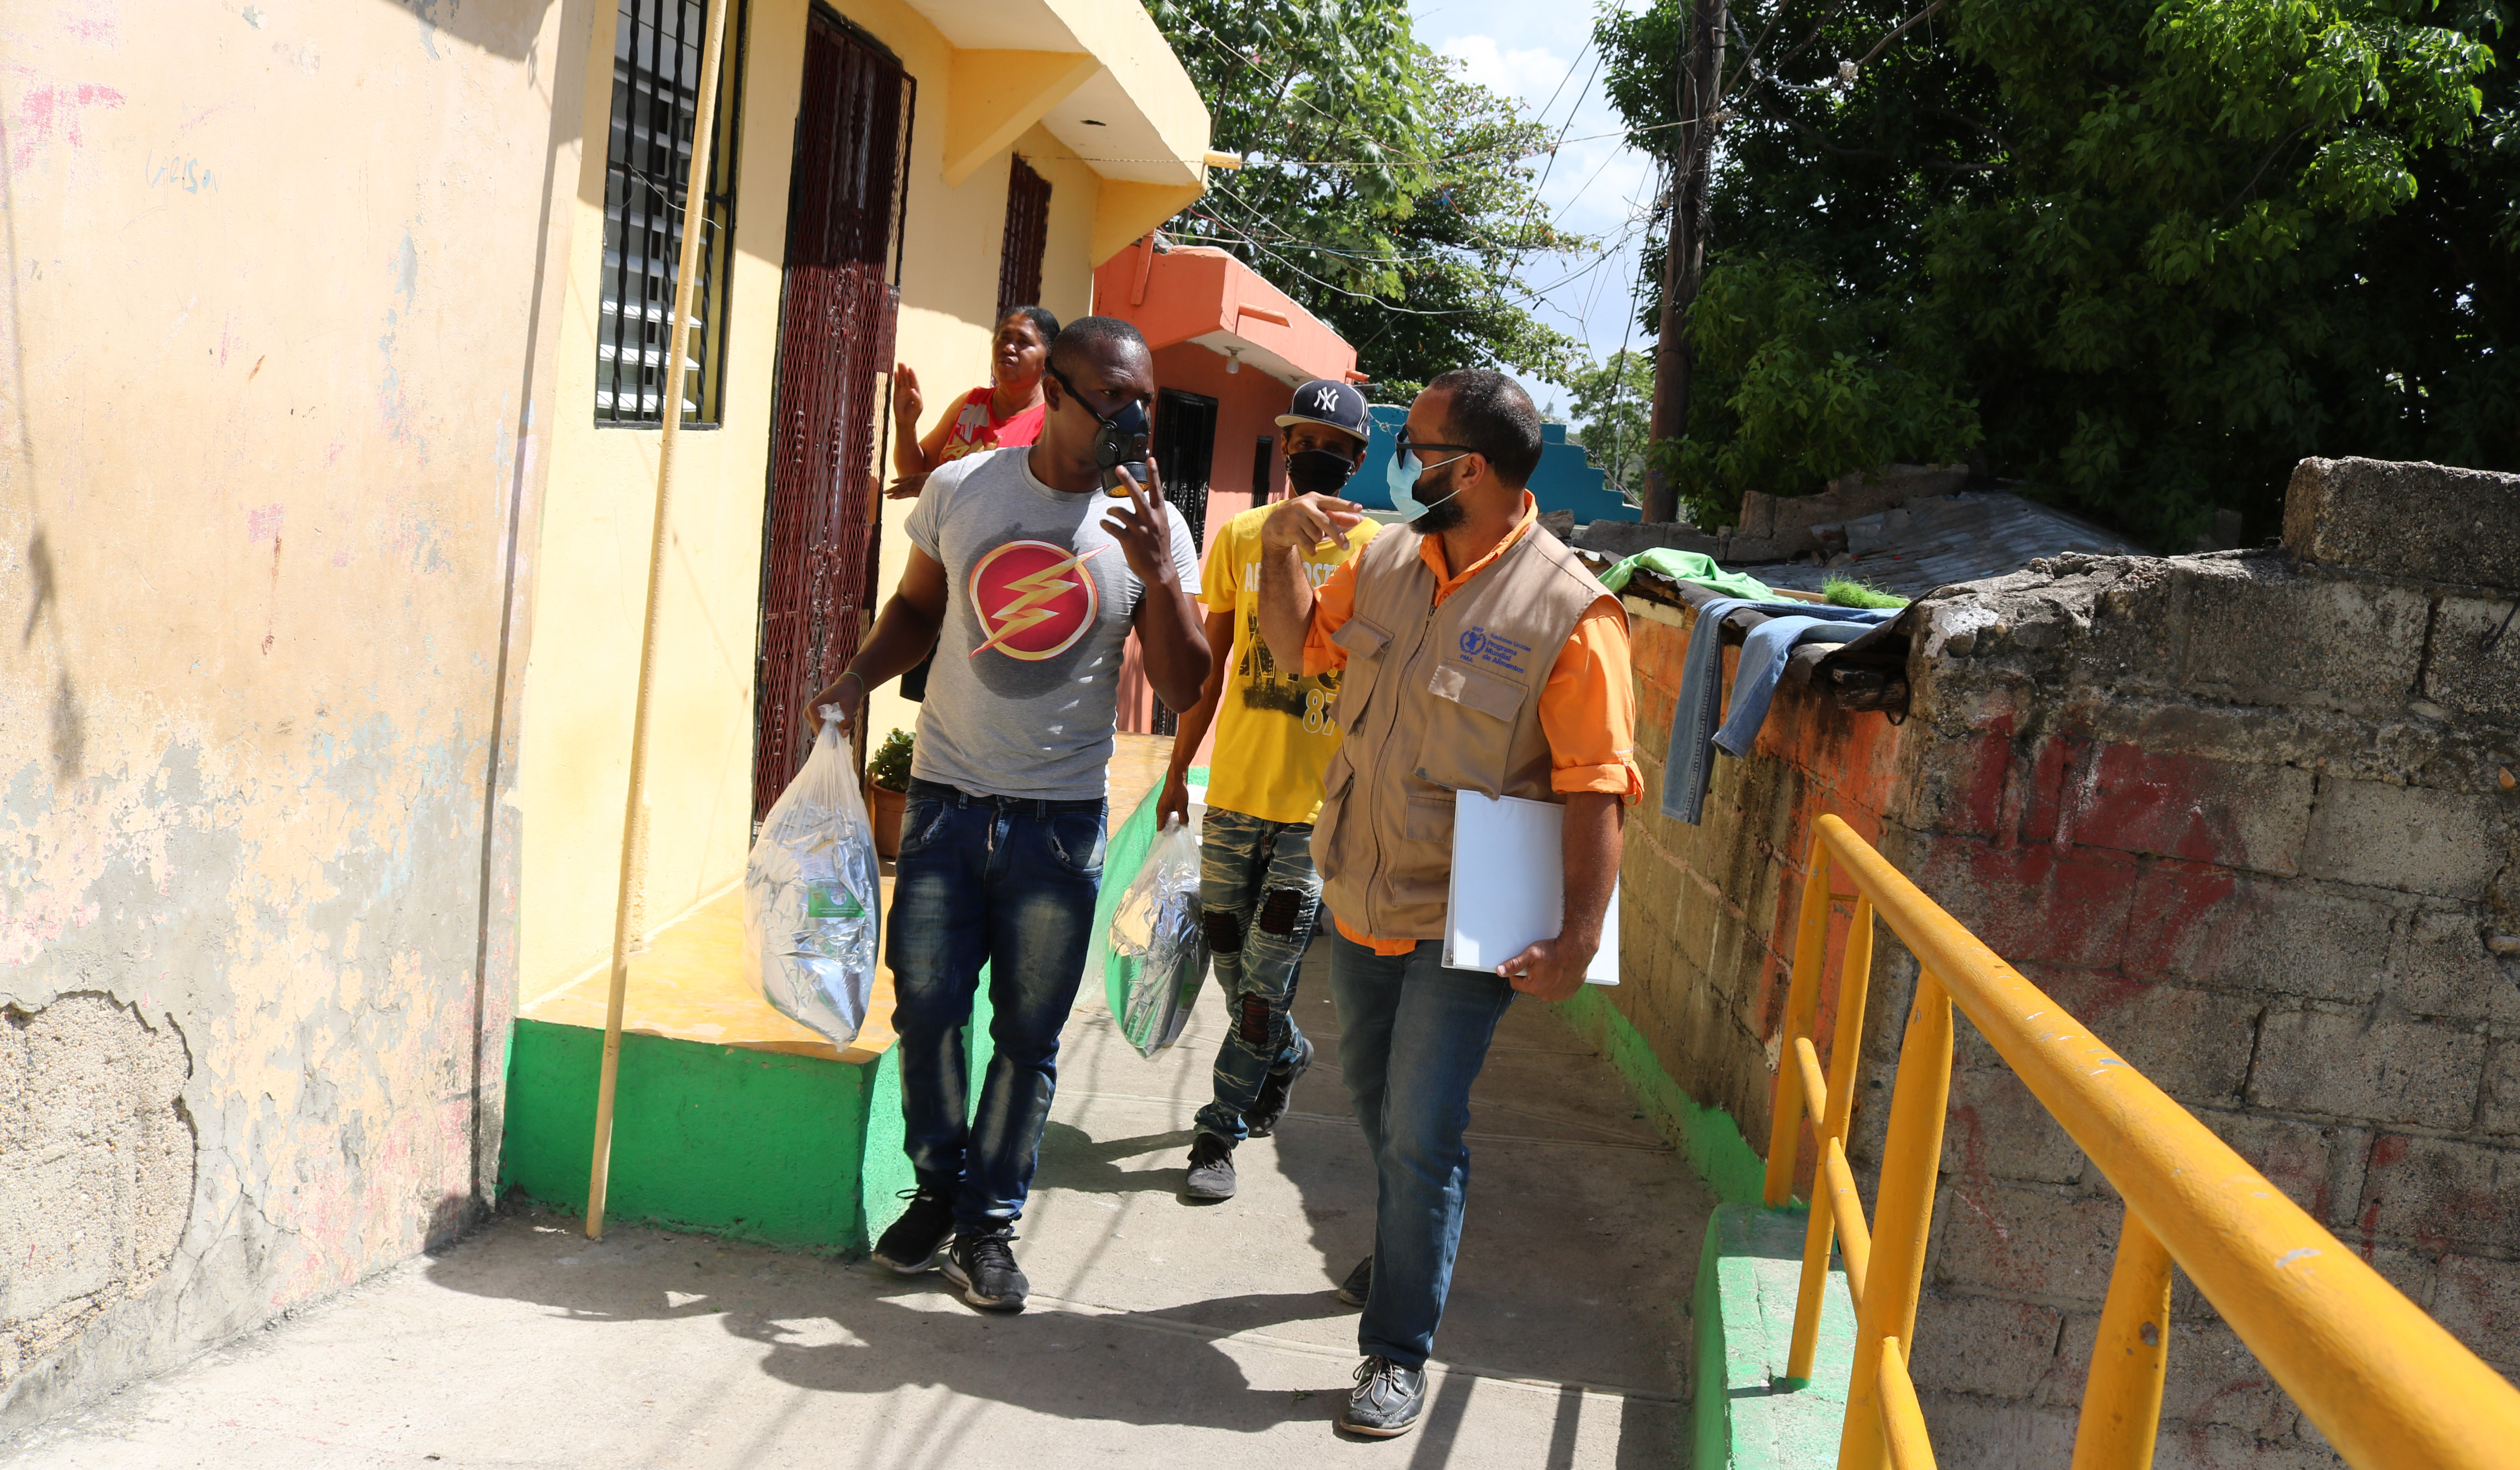 UN staff with local residents walk along homes in a neighbourhood in the Dominican Republic.